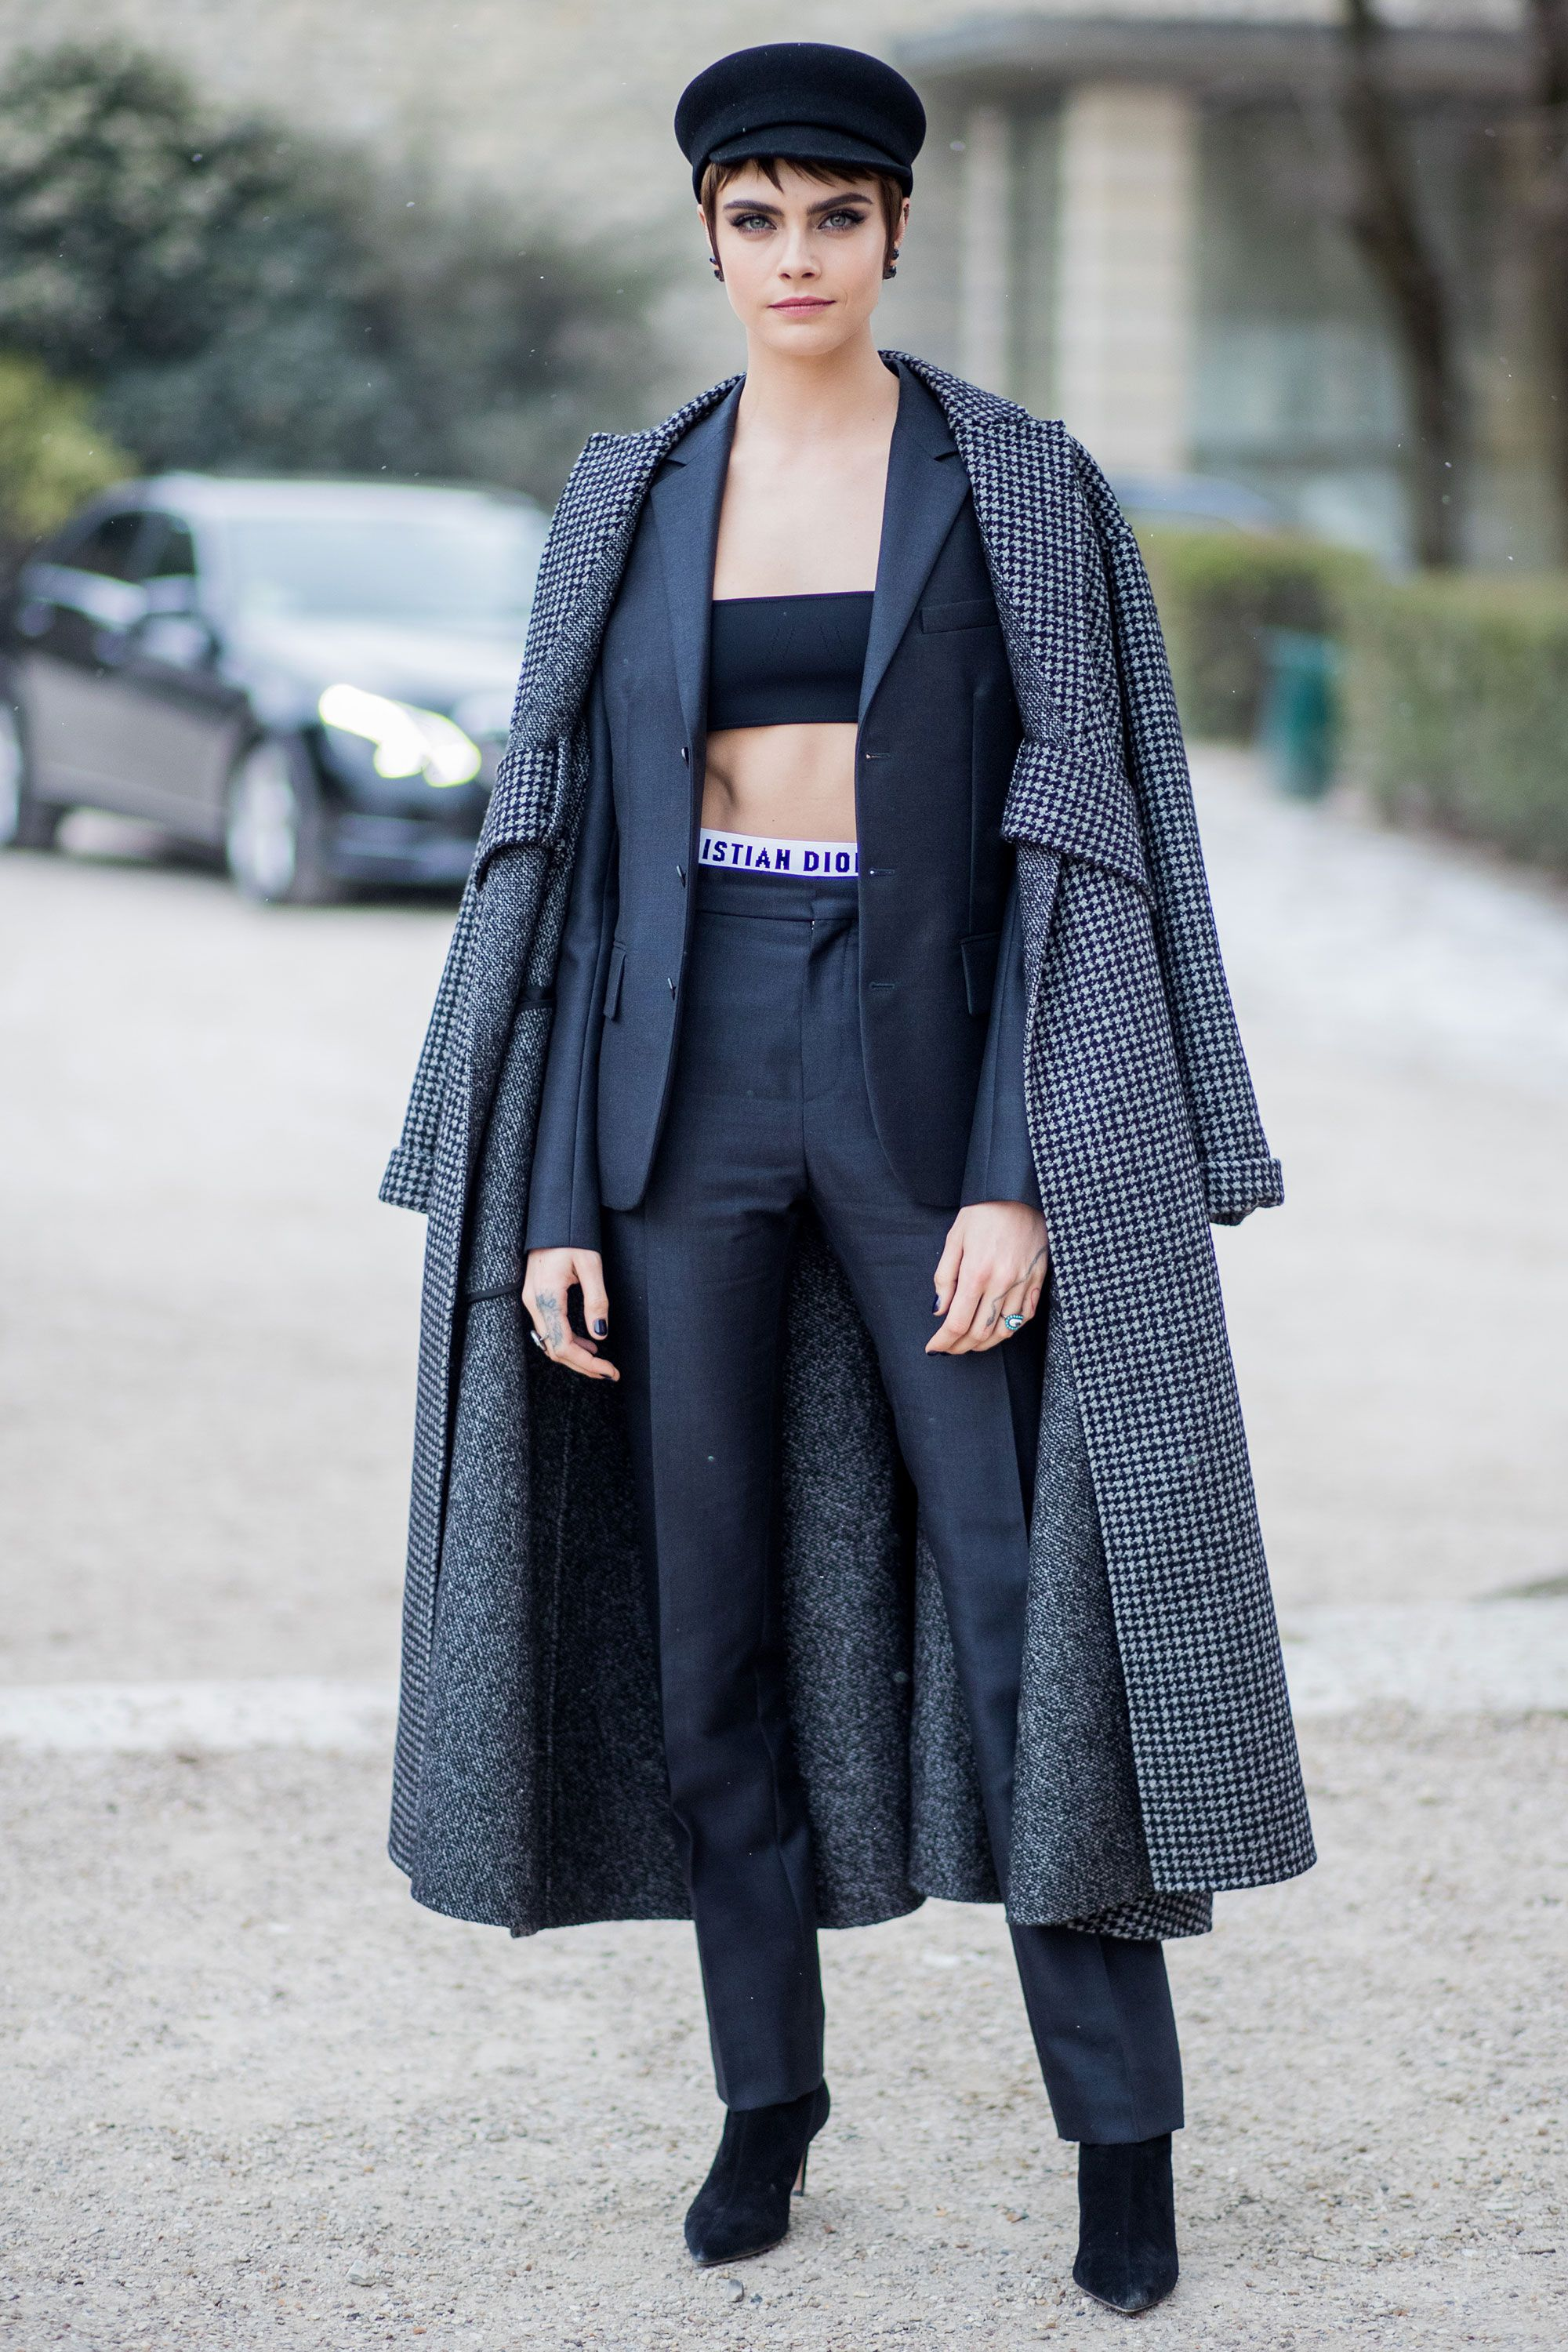 650d5597768d Winter style inspiration from the A-list – Celebrity style inspiration in  winter